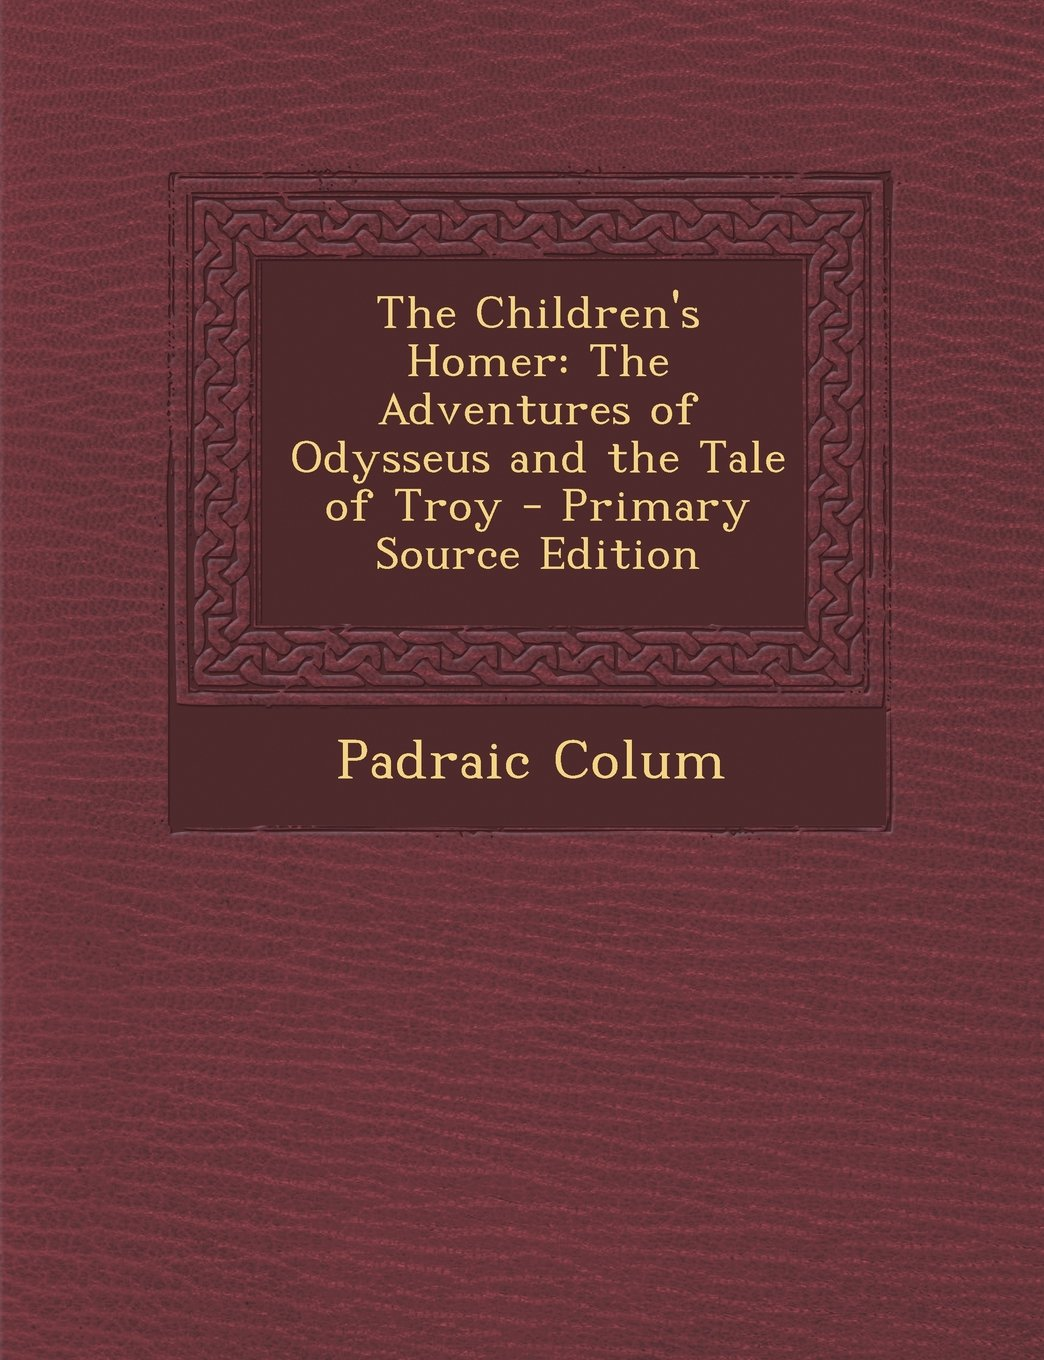 The Children's Homer: The Adventures of Odysseus and the Tale of Troy - Primary Source Edition PDF